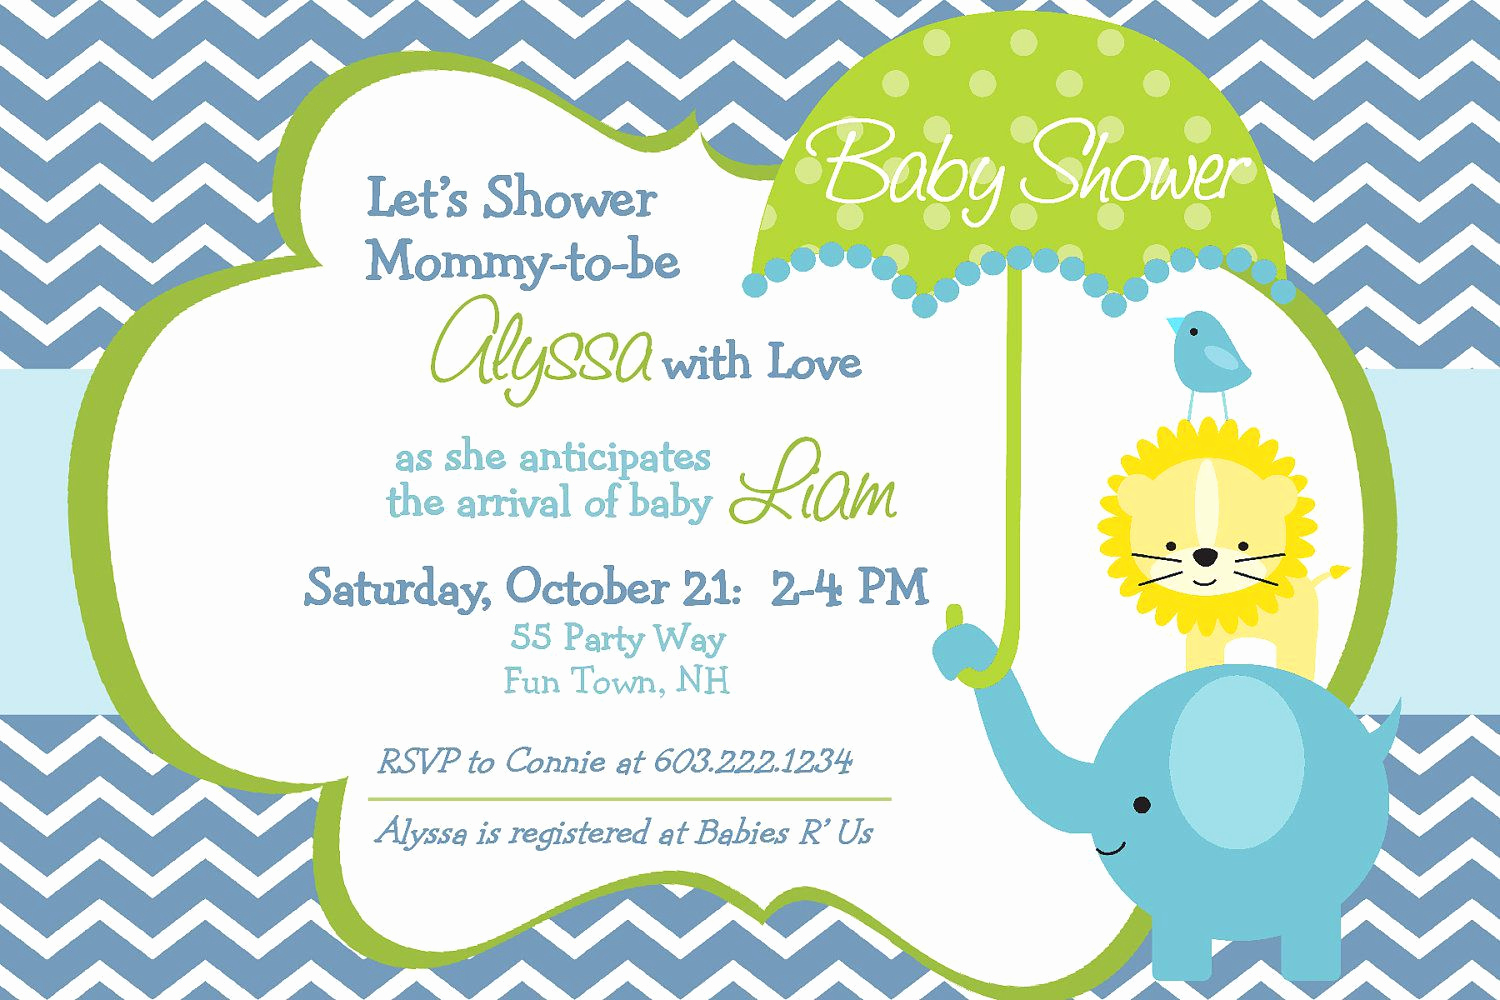 Baby Shower Invitation Pics Awesome Baby Shower Invitation Templates Baby Shower Invitation